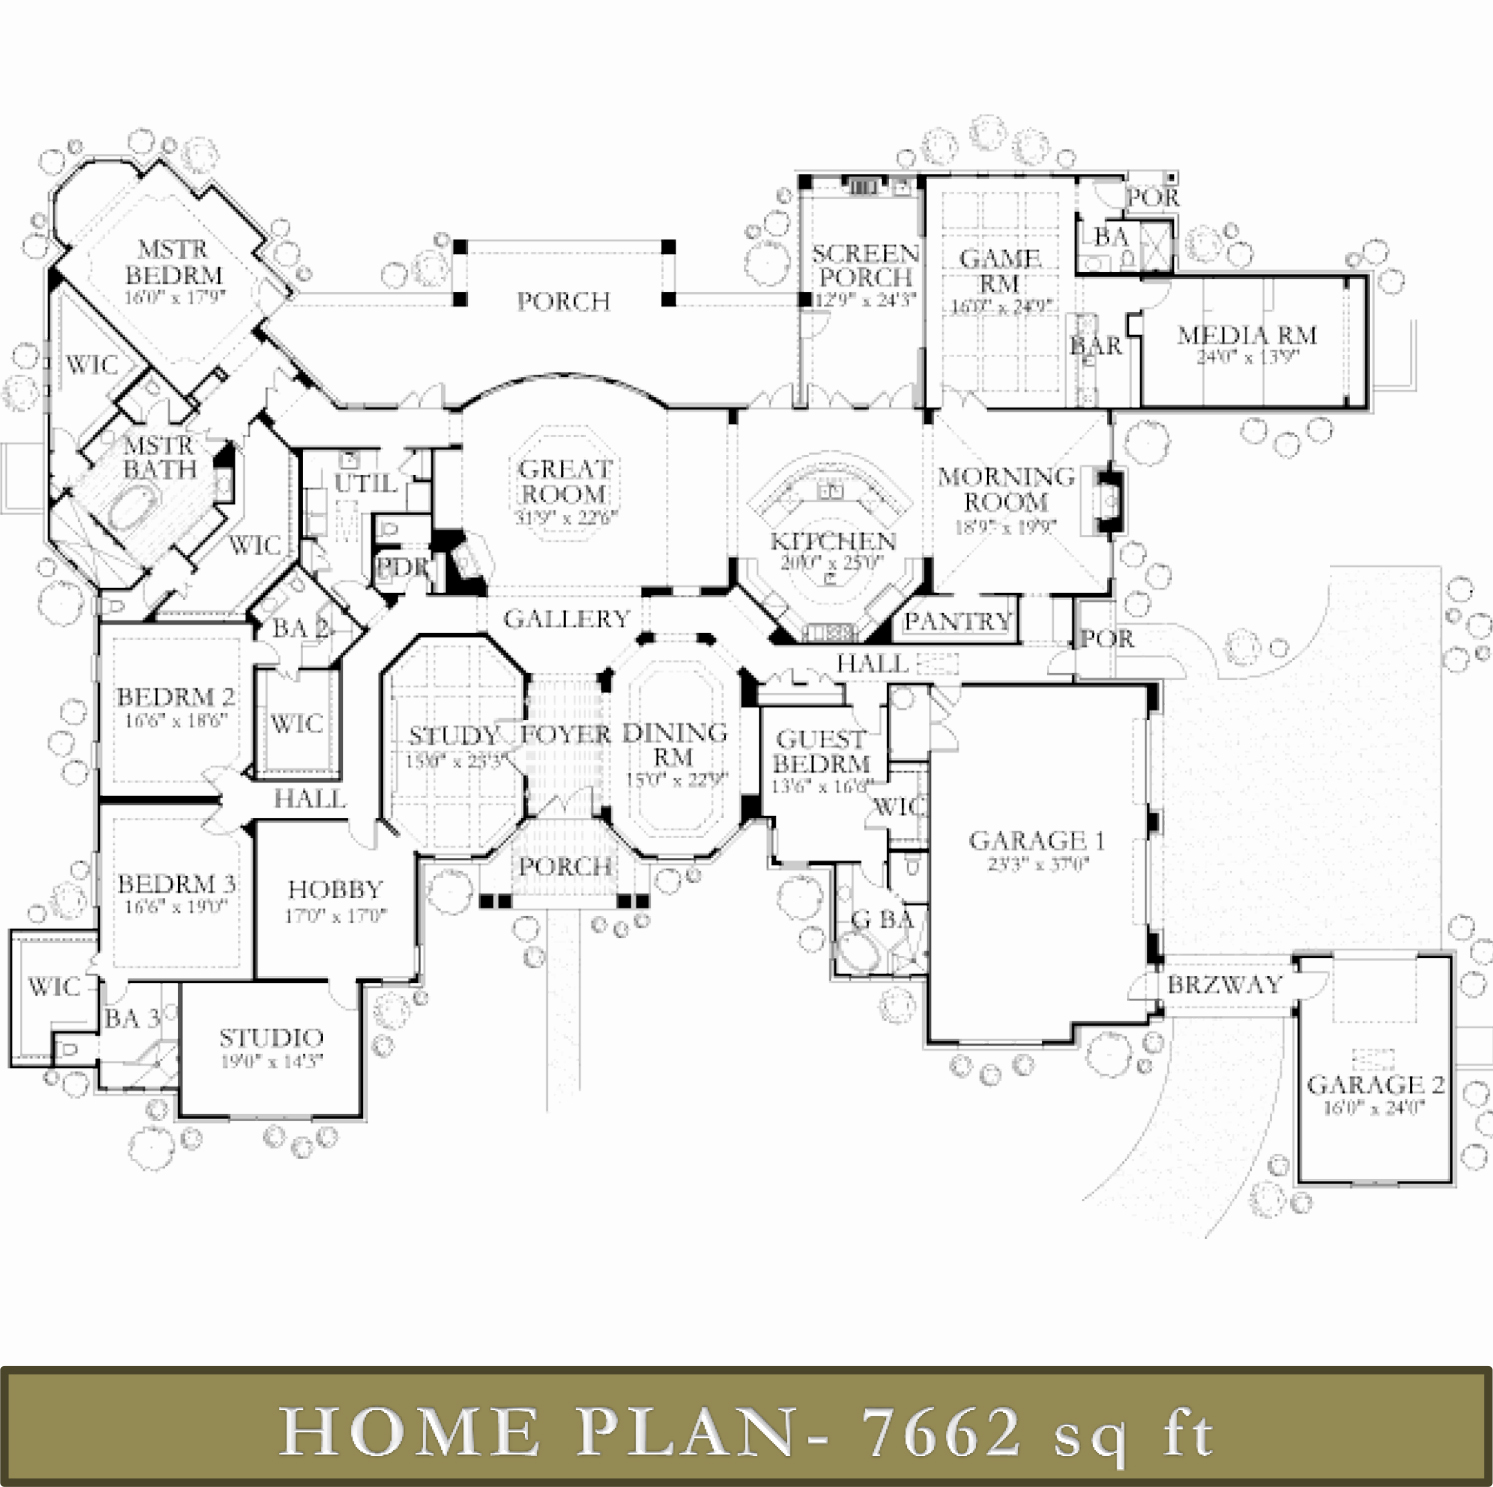 Texas House Plans Over 700 Proven Home Designs: Over 5000 Sq Ft